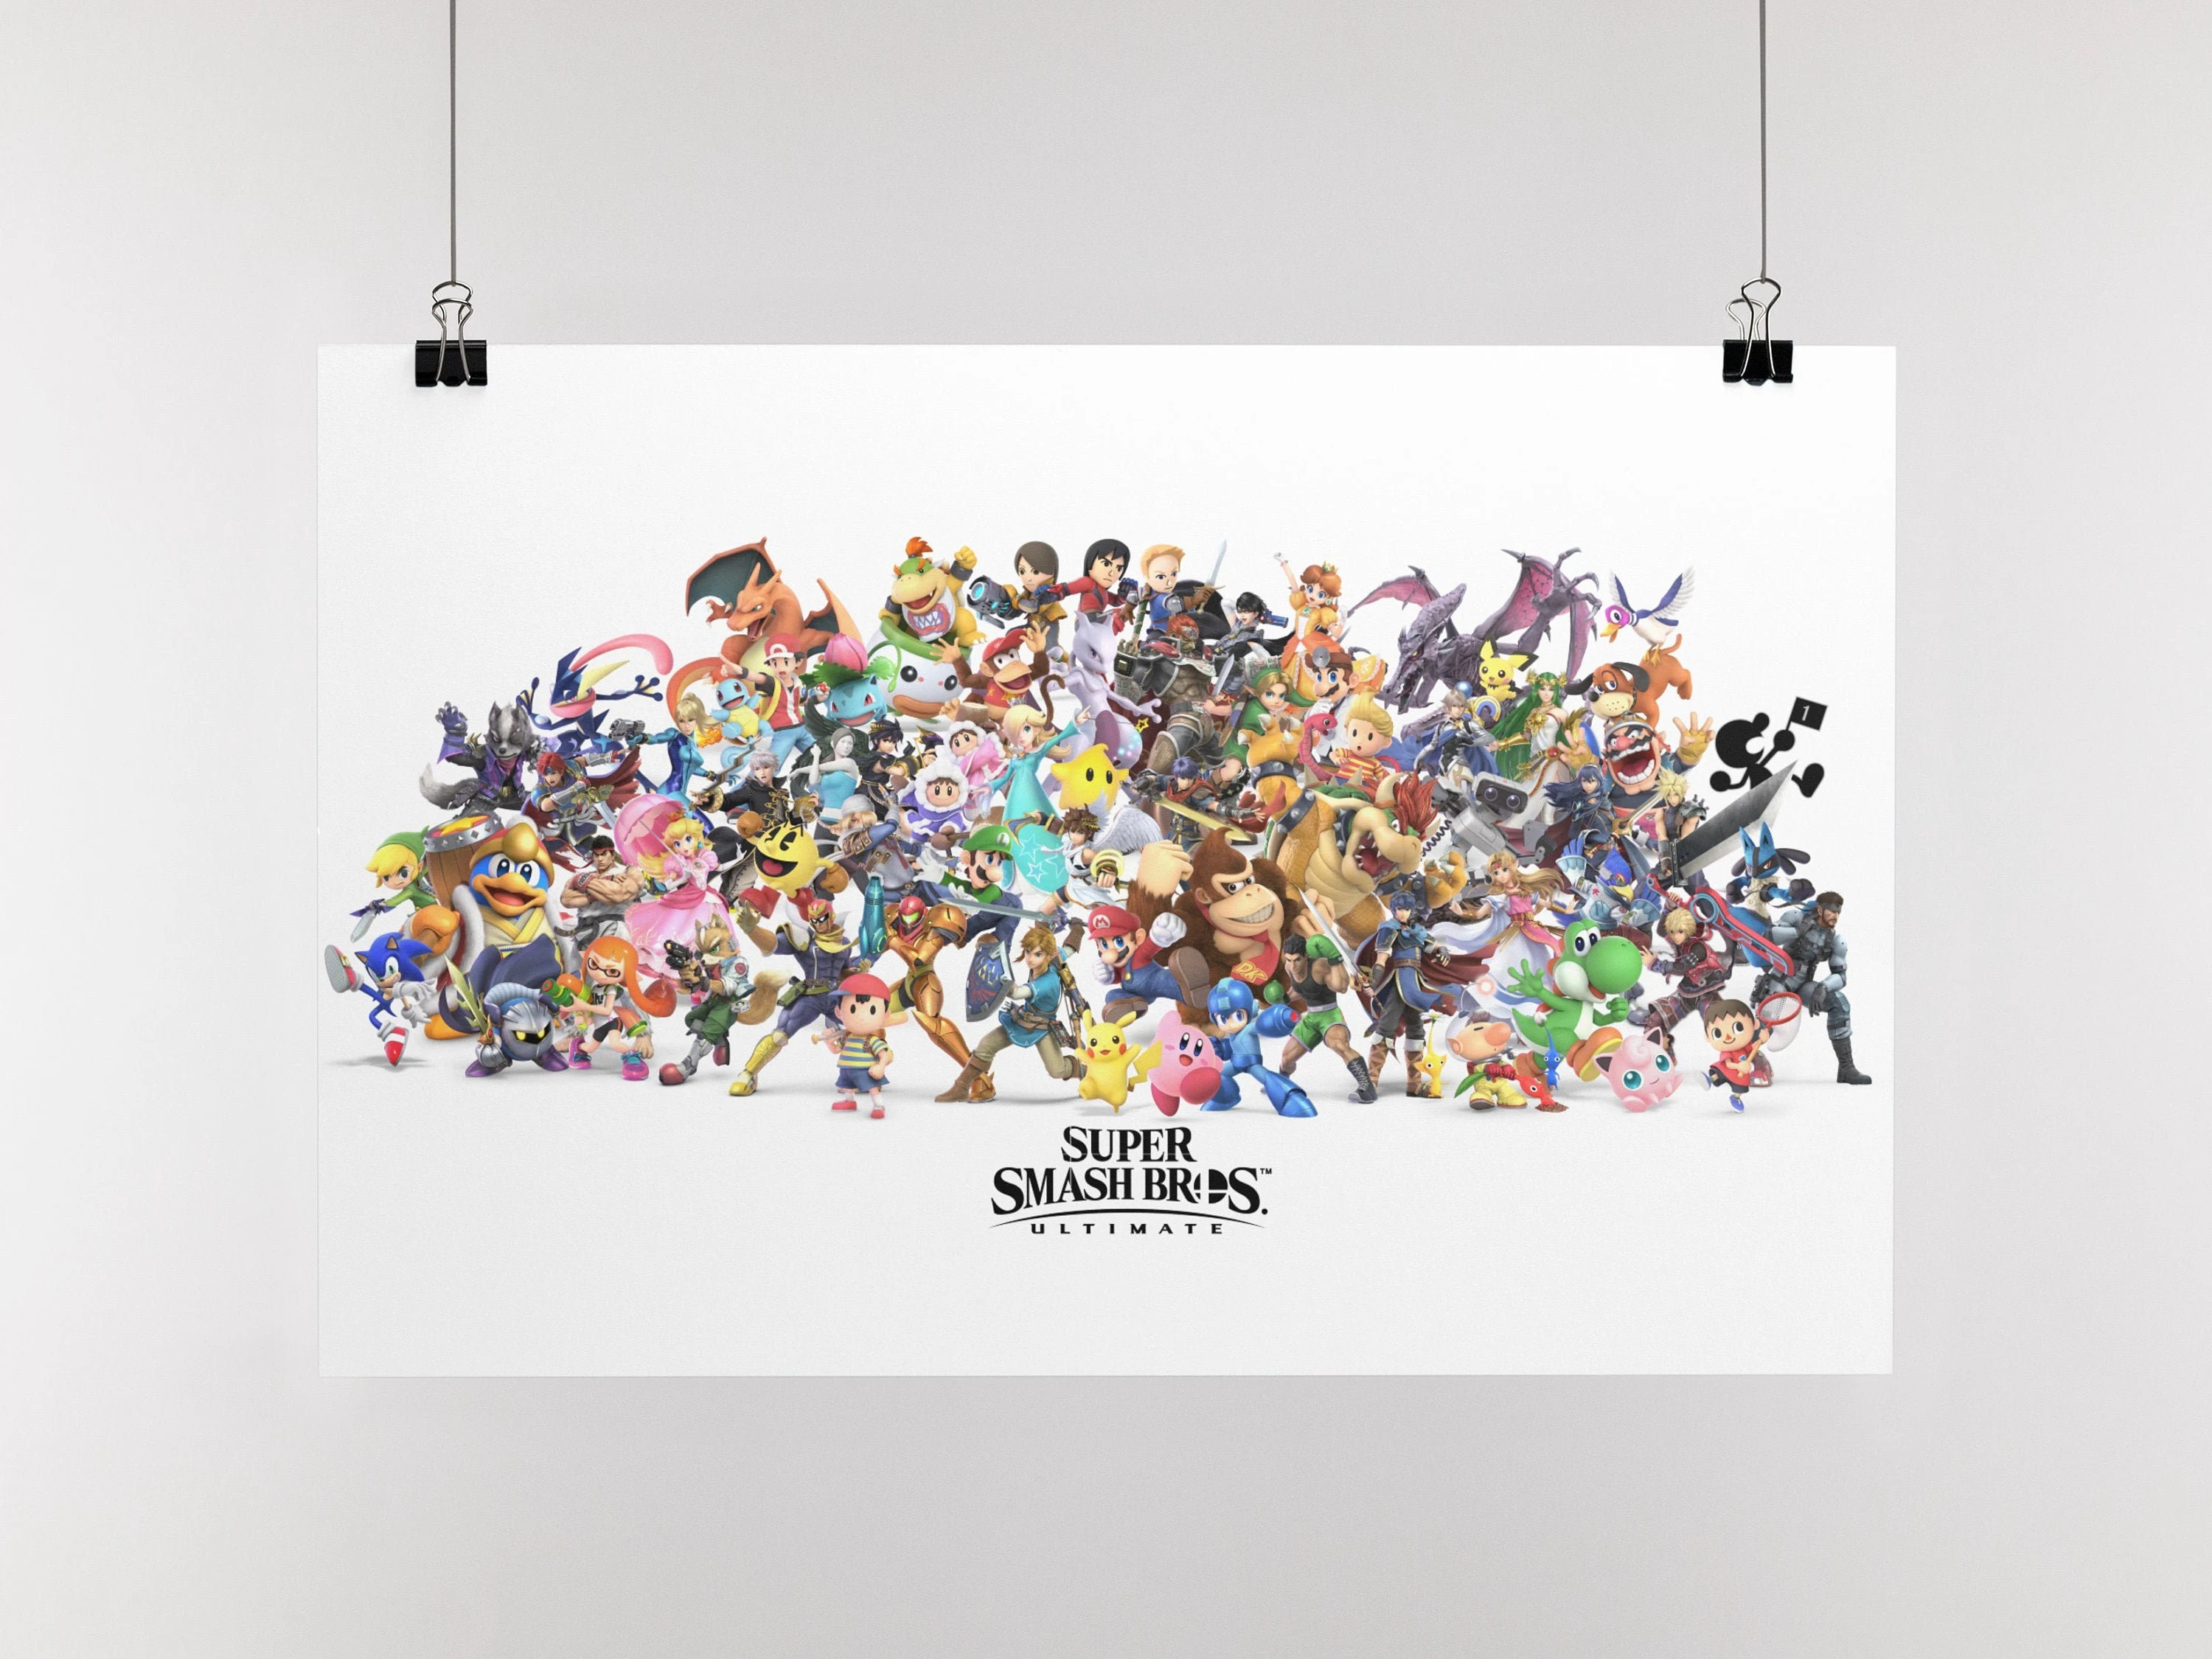 super smash bros ultimate roster characters poster print limited edition wall art various sizes available hand drawn artwork wall poster